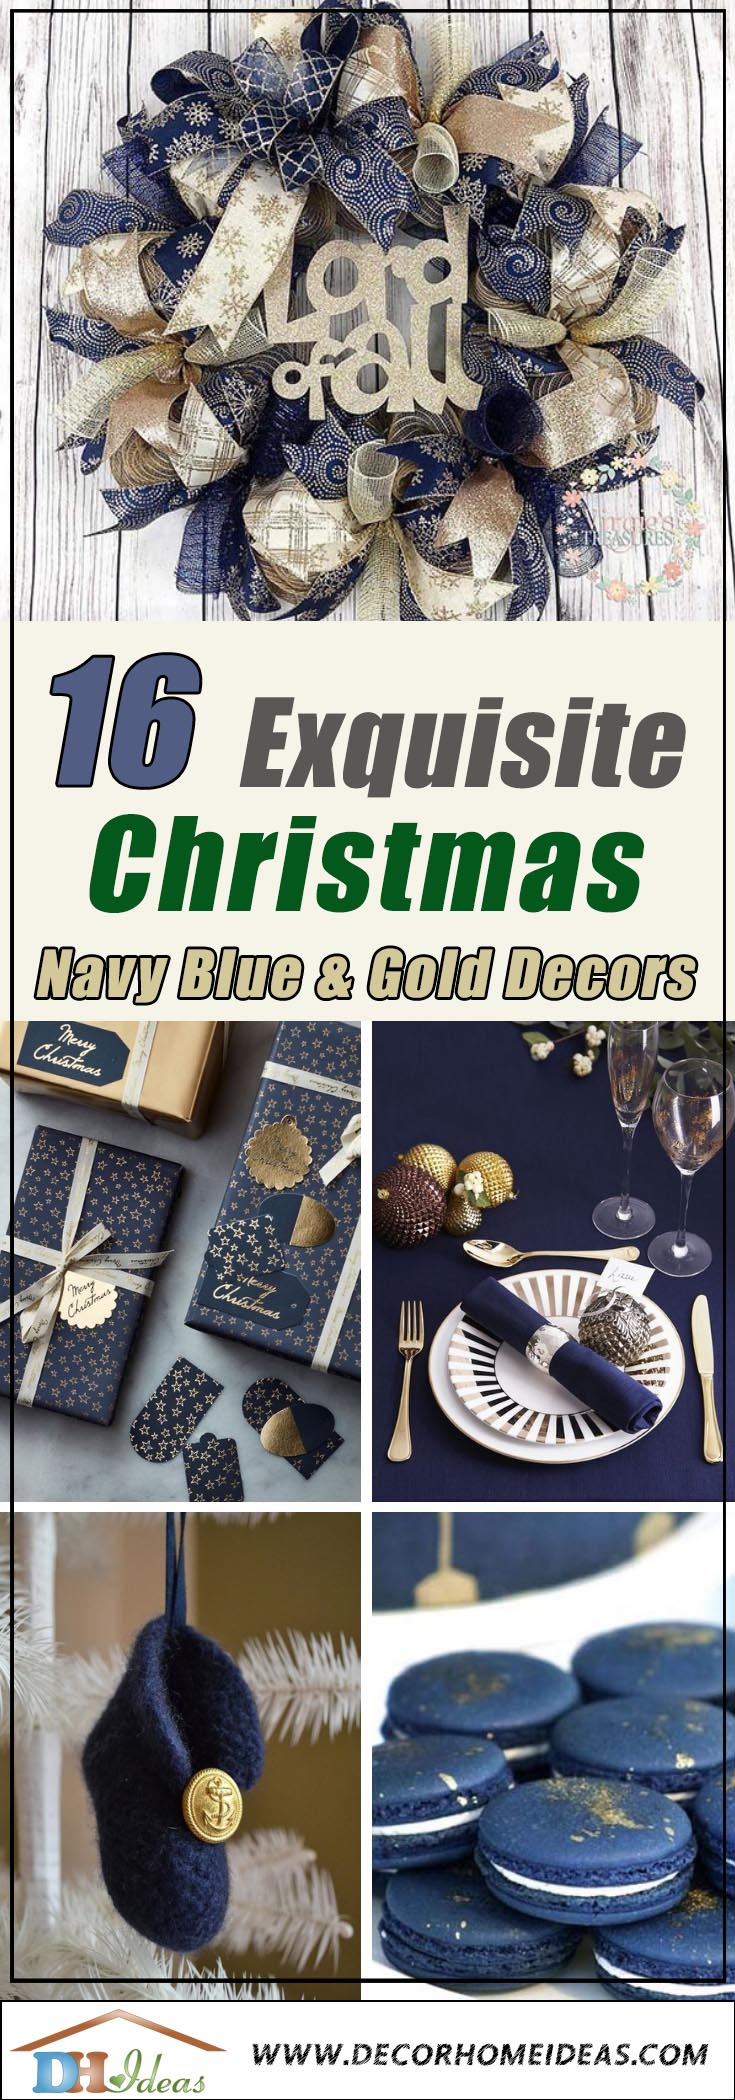 Navy Blue Gold Christmas Decorations #Christmas #Christmasdecor #gold #navyblue #decorhomeideas